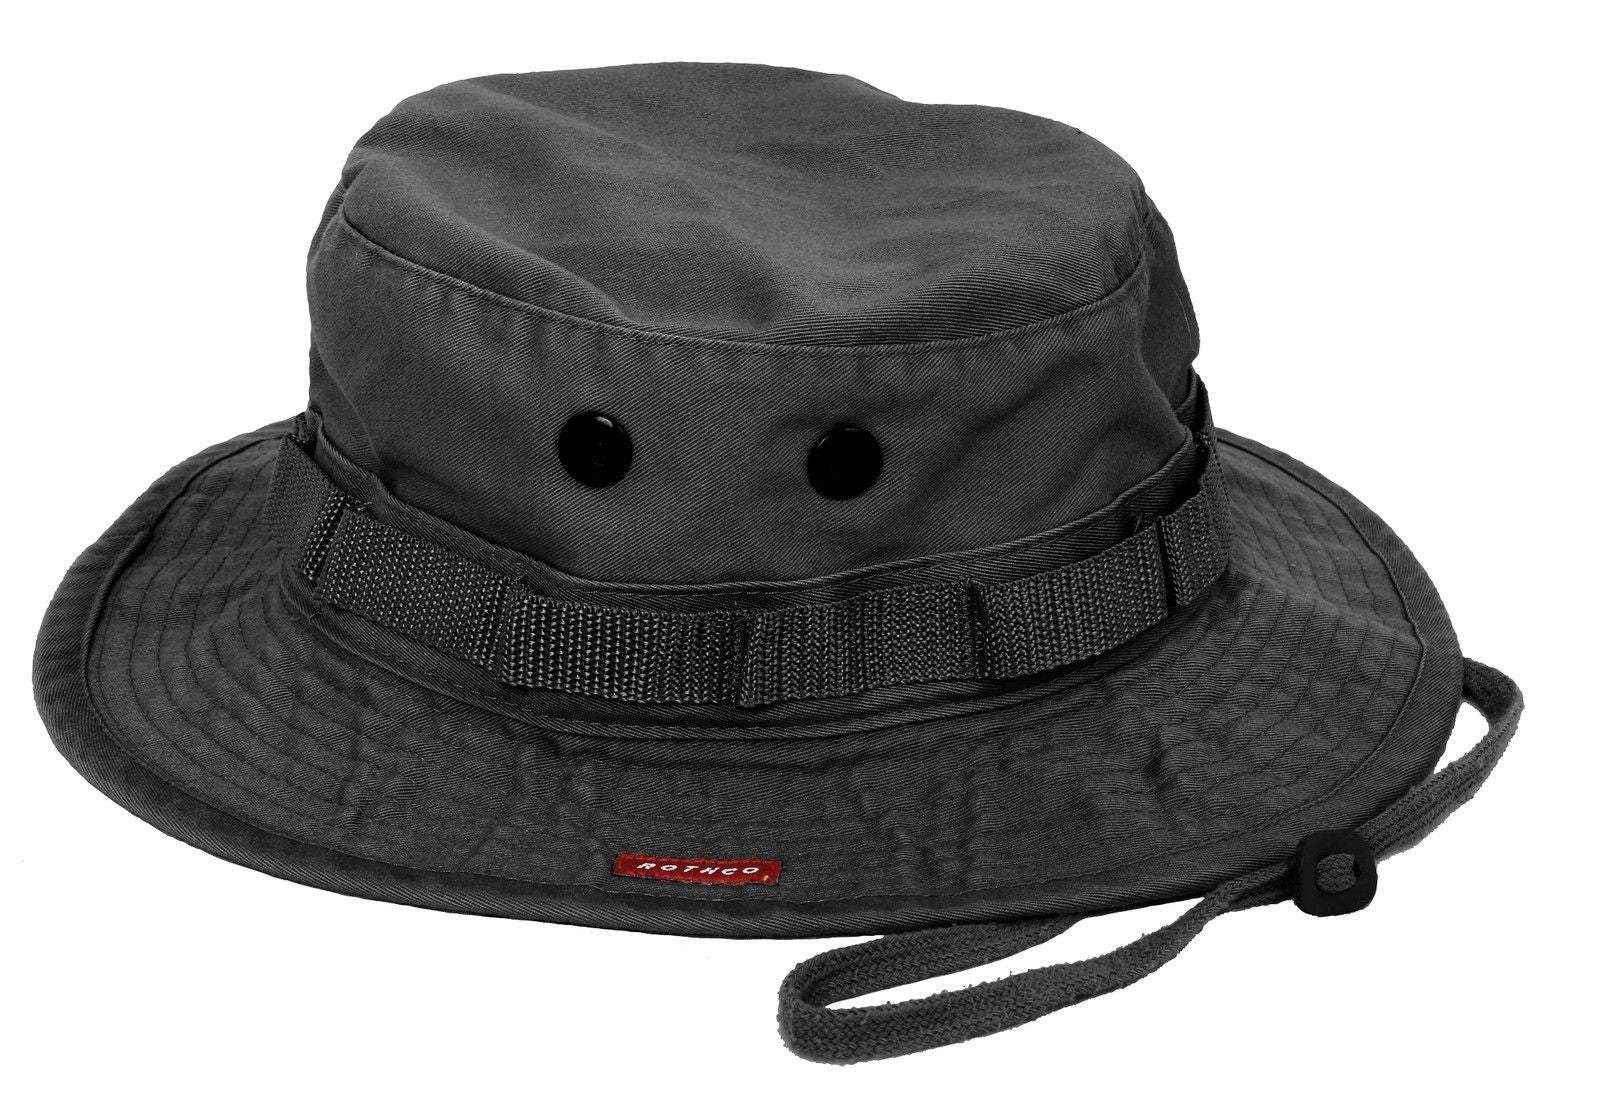 451e925bb6c0e Military Boonie Hat - Vintage Black Breathable Camping